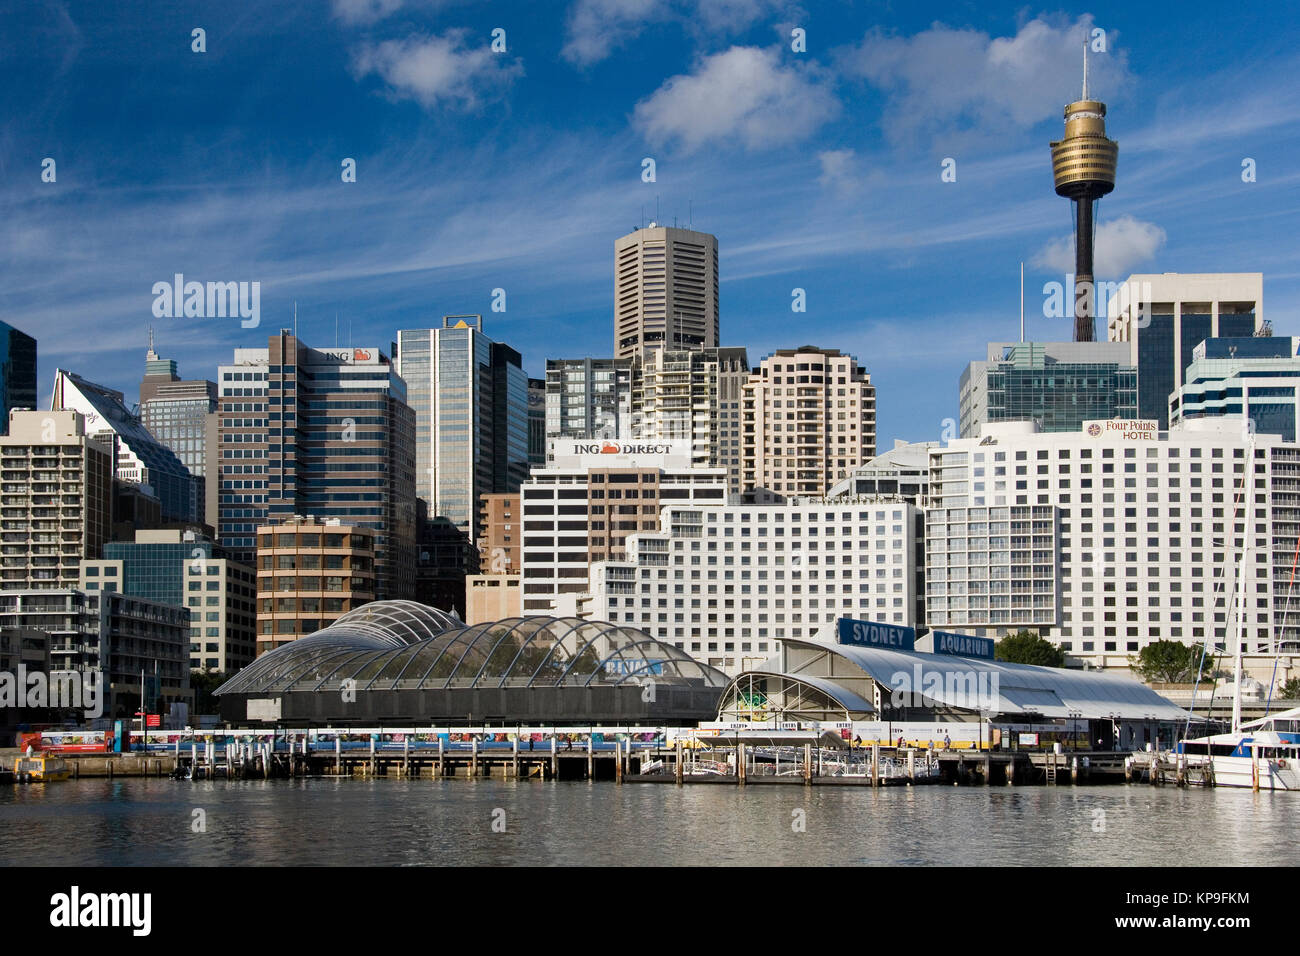 Sydney skyline at Darling Harbor in the city of Sydney in New South Wales, Australia. - Stock Image